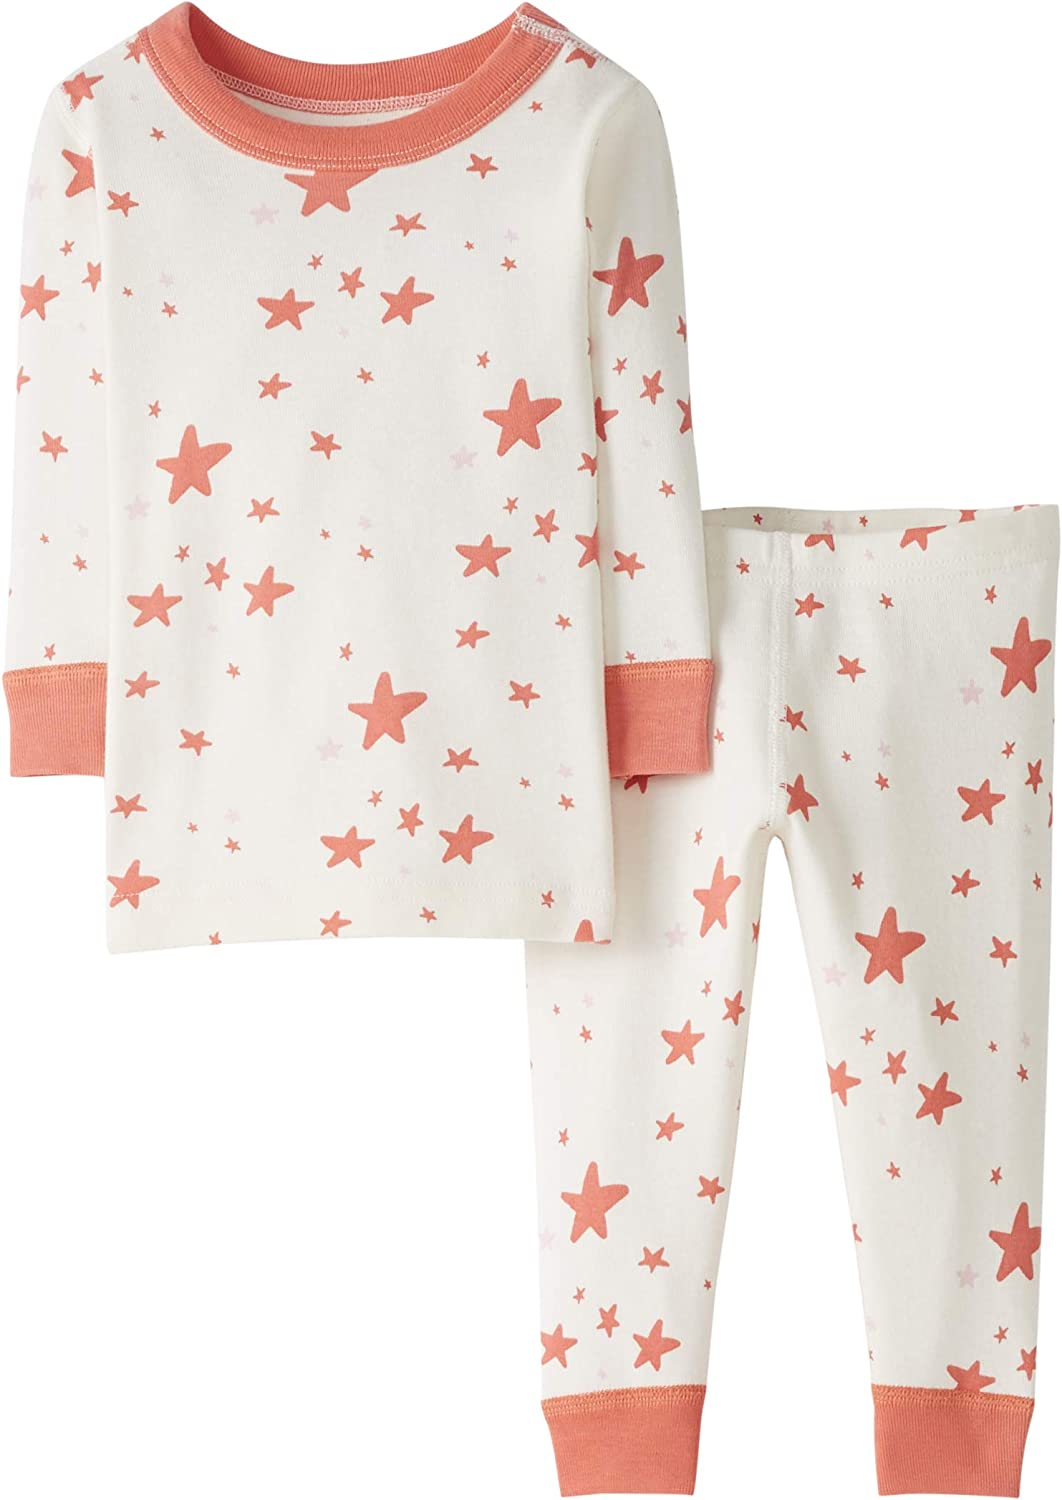 Moon and Back by Hanna Andersson Baby//Toddler 2 Piece Long Sleeve Pajama Set